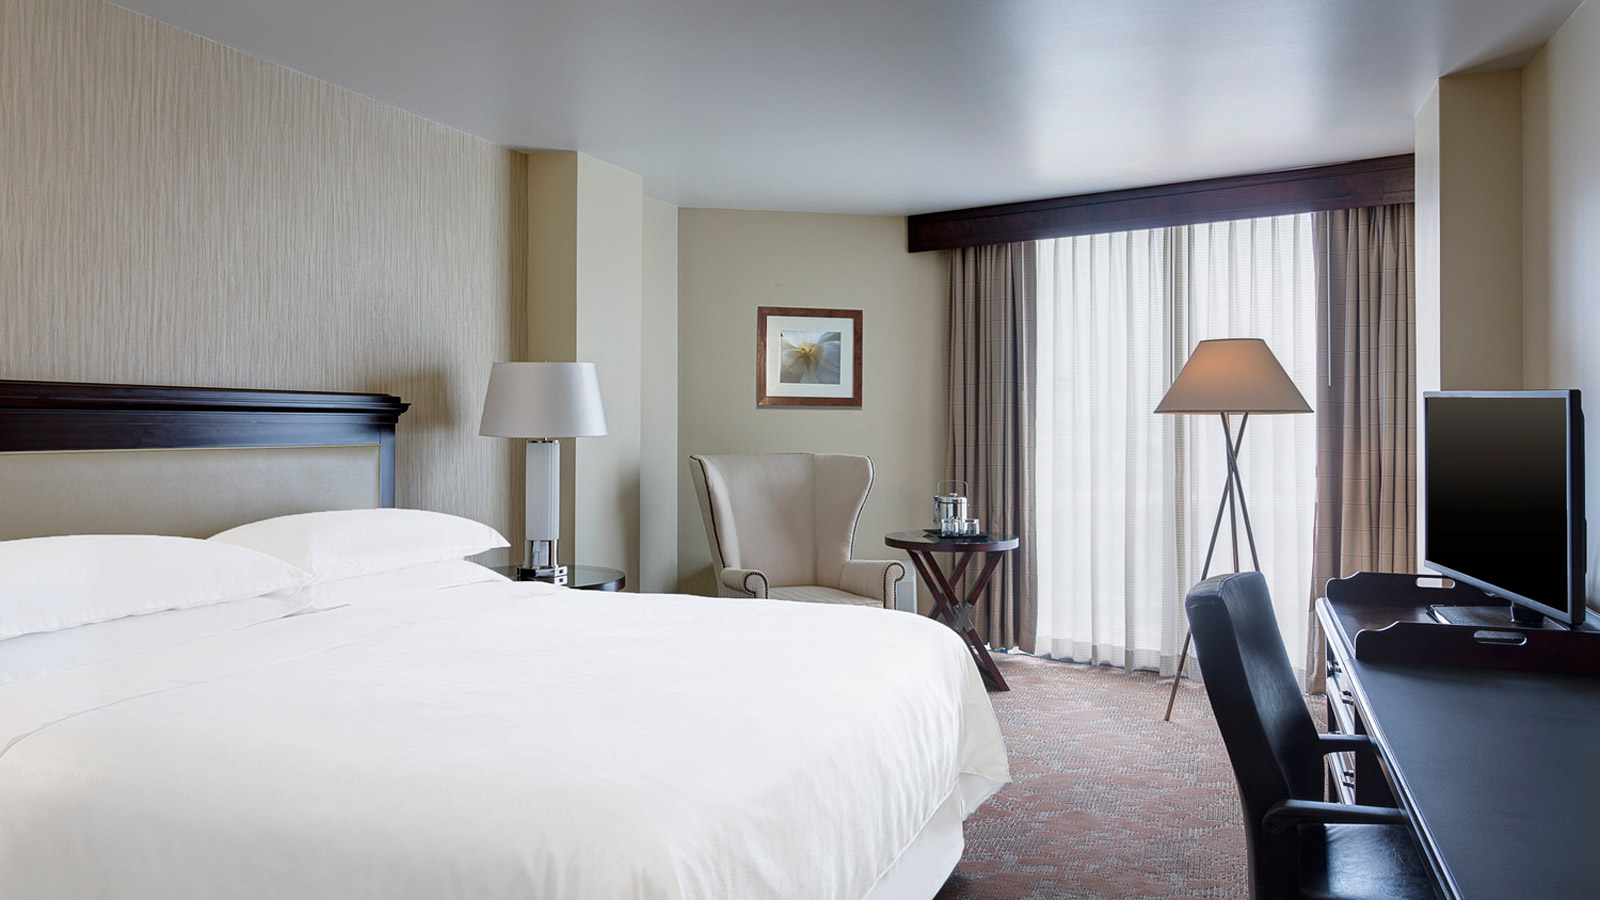 https://www.hotelsbyday.com/_data/default-hotel_image/0/2656/sheraton-houston-brookhollow-king-guestroom.jpg